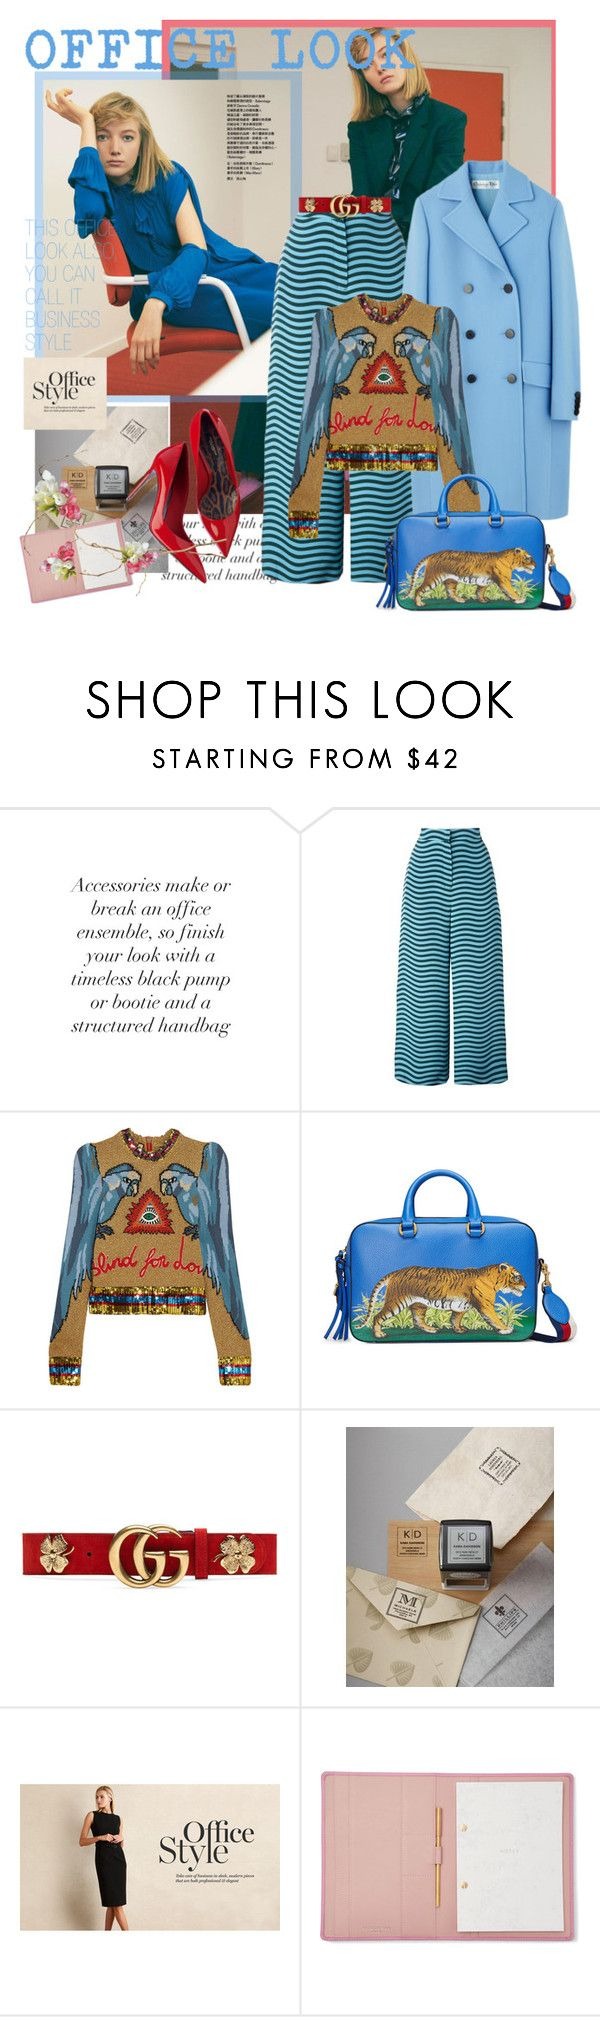 """""""OFFICE LOOK"""" by mariapia65 ❤ liked on Polyvore featuring Fendi, Gucci, Three Designing Women, StudioSarah and officelook"""